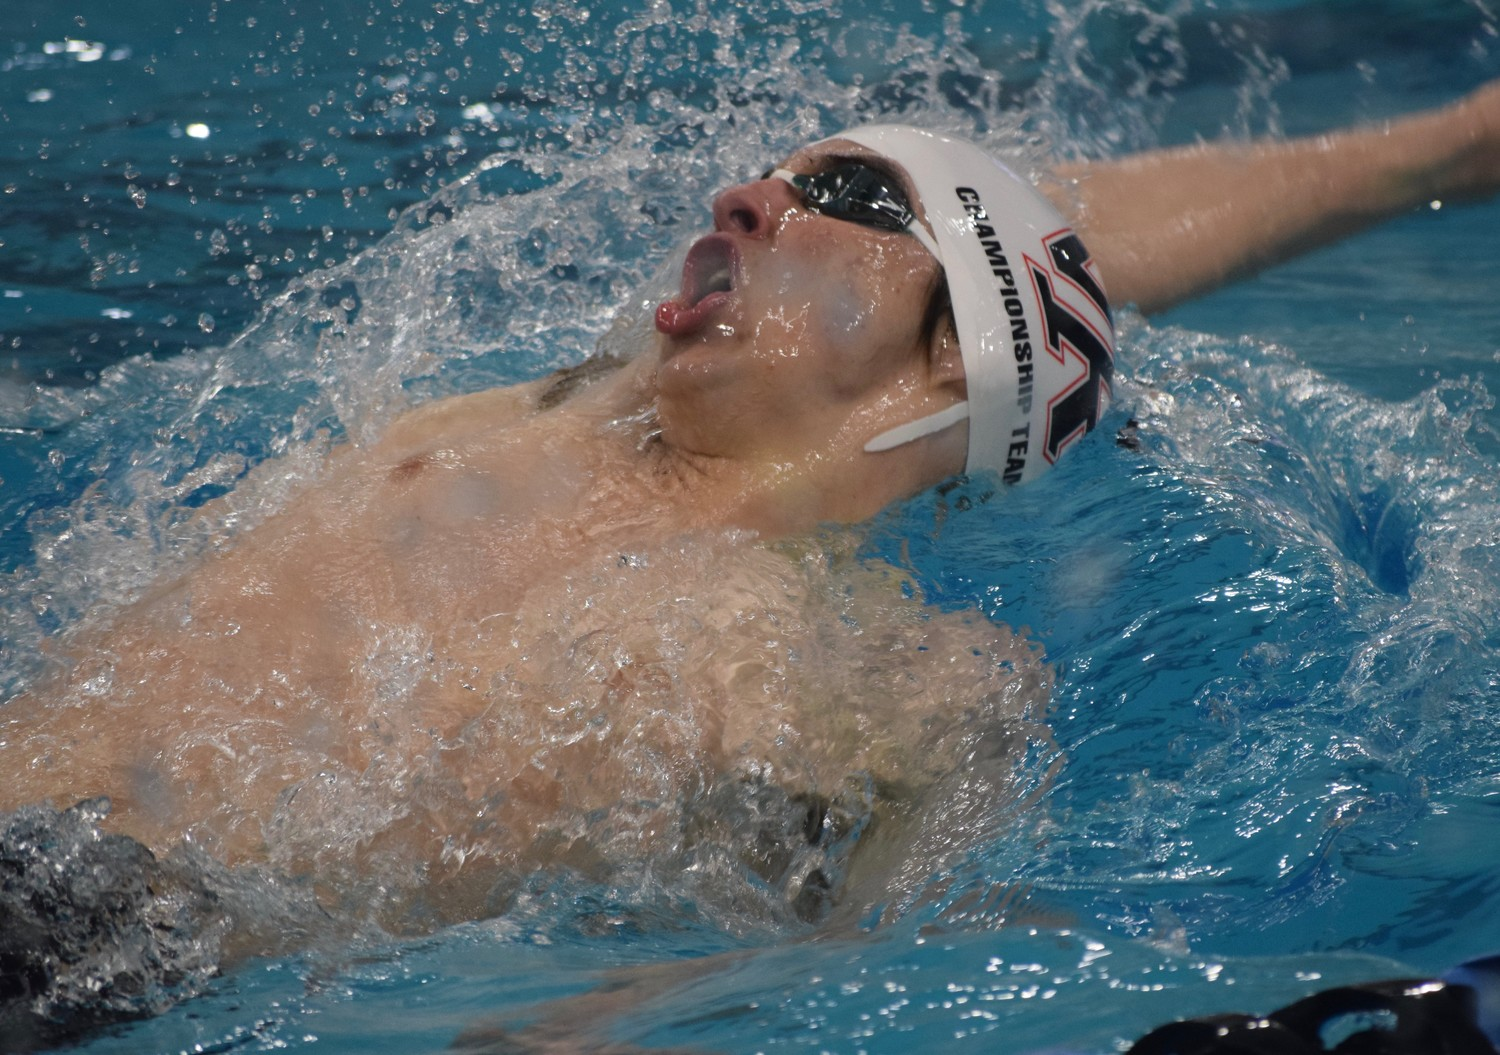 Vista Ridge senior Ethan Gogulski qualified for the consolation finals in the 100-yard backstroke Friday night, finishing in 10th place with a time of 51.01.